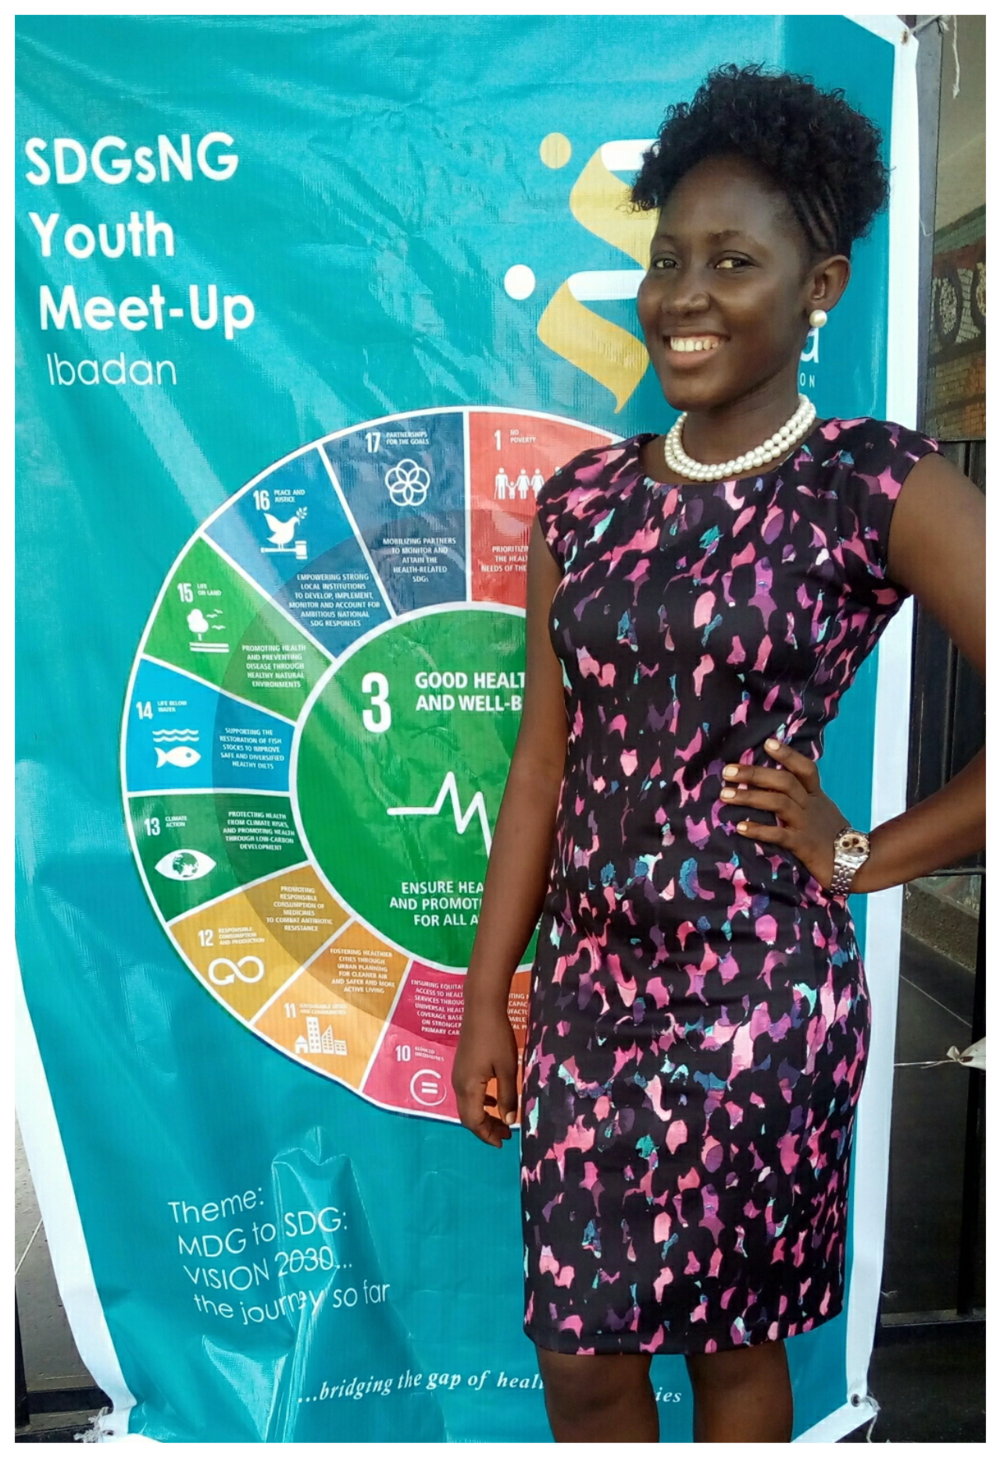 Adeola Raji at SDGsNG Youth Meet-up in Ibadan.